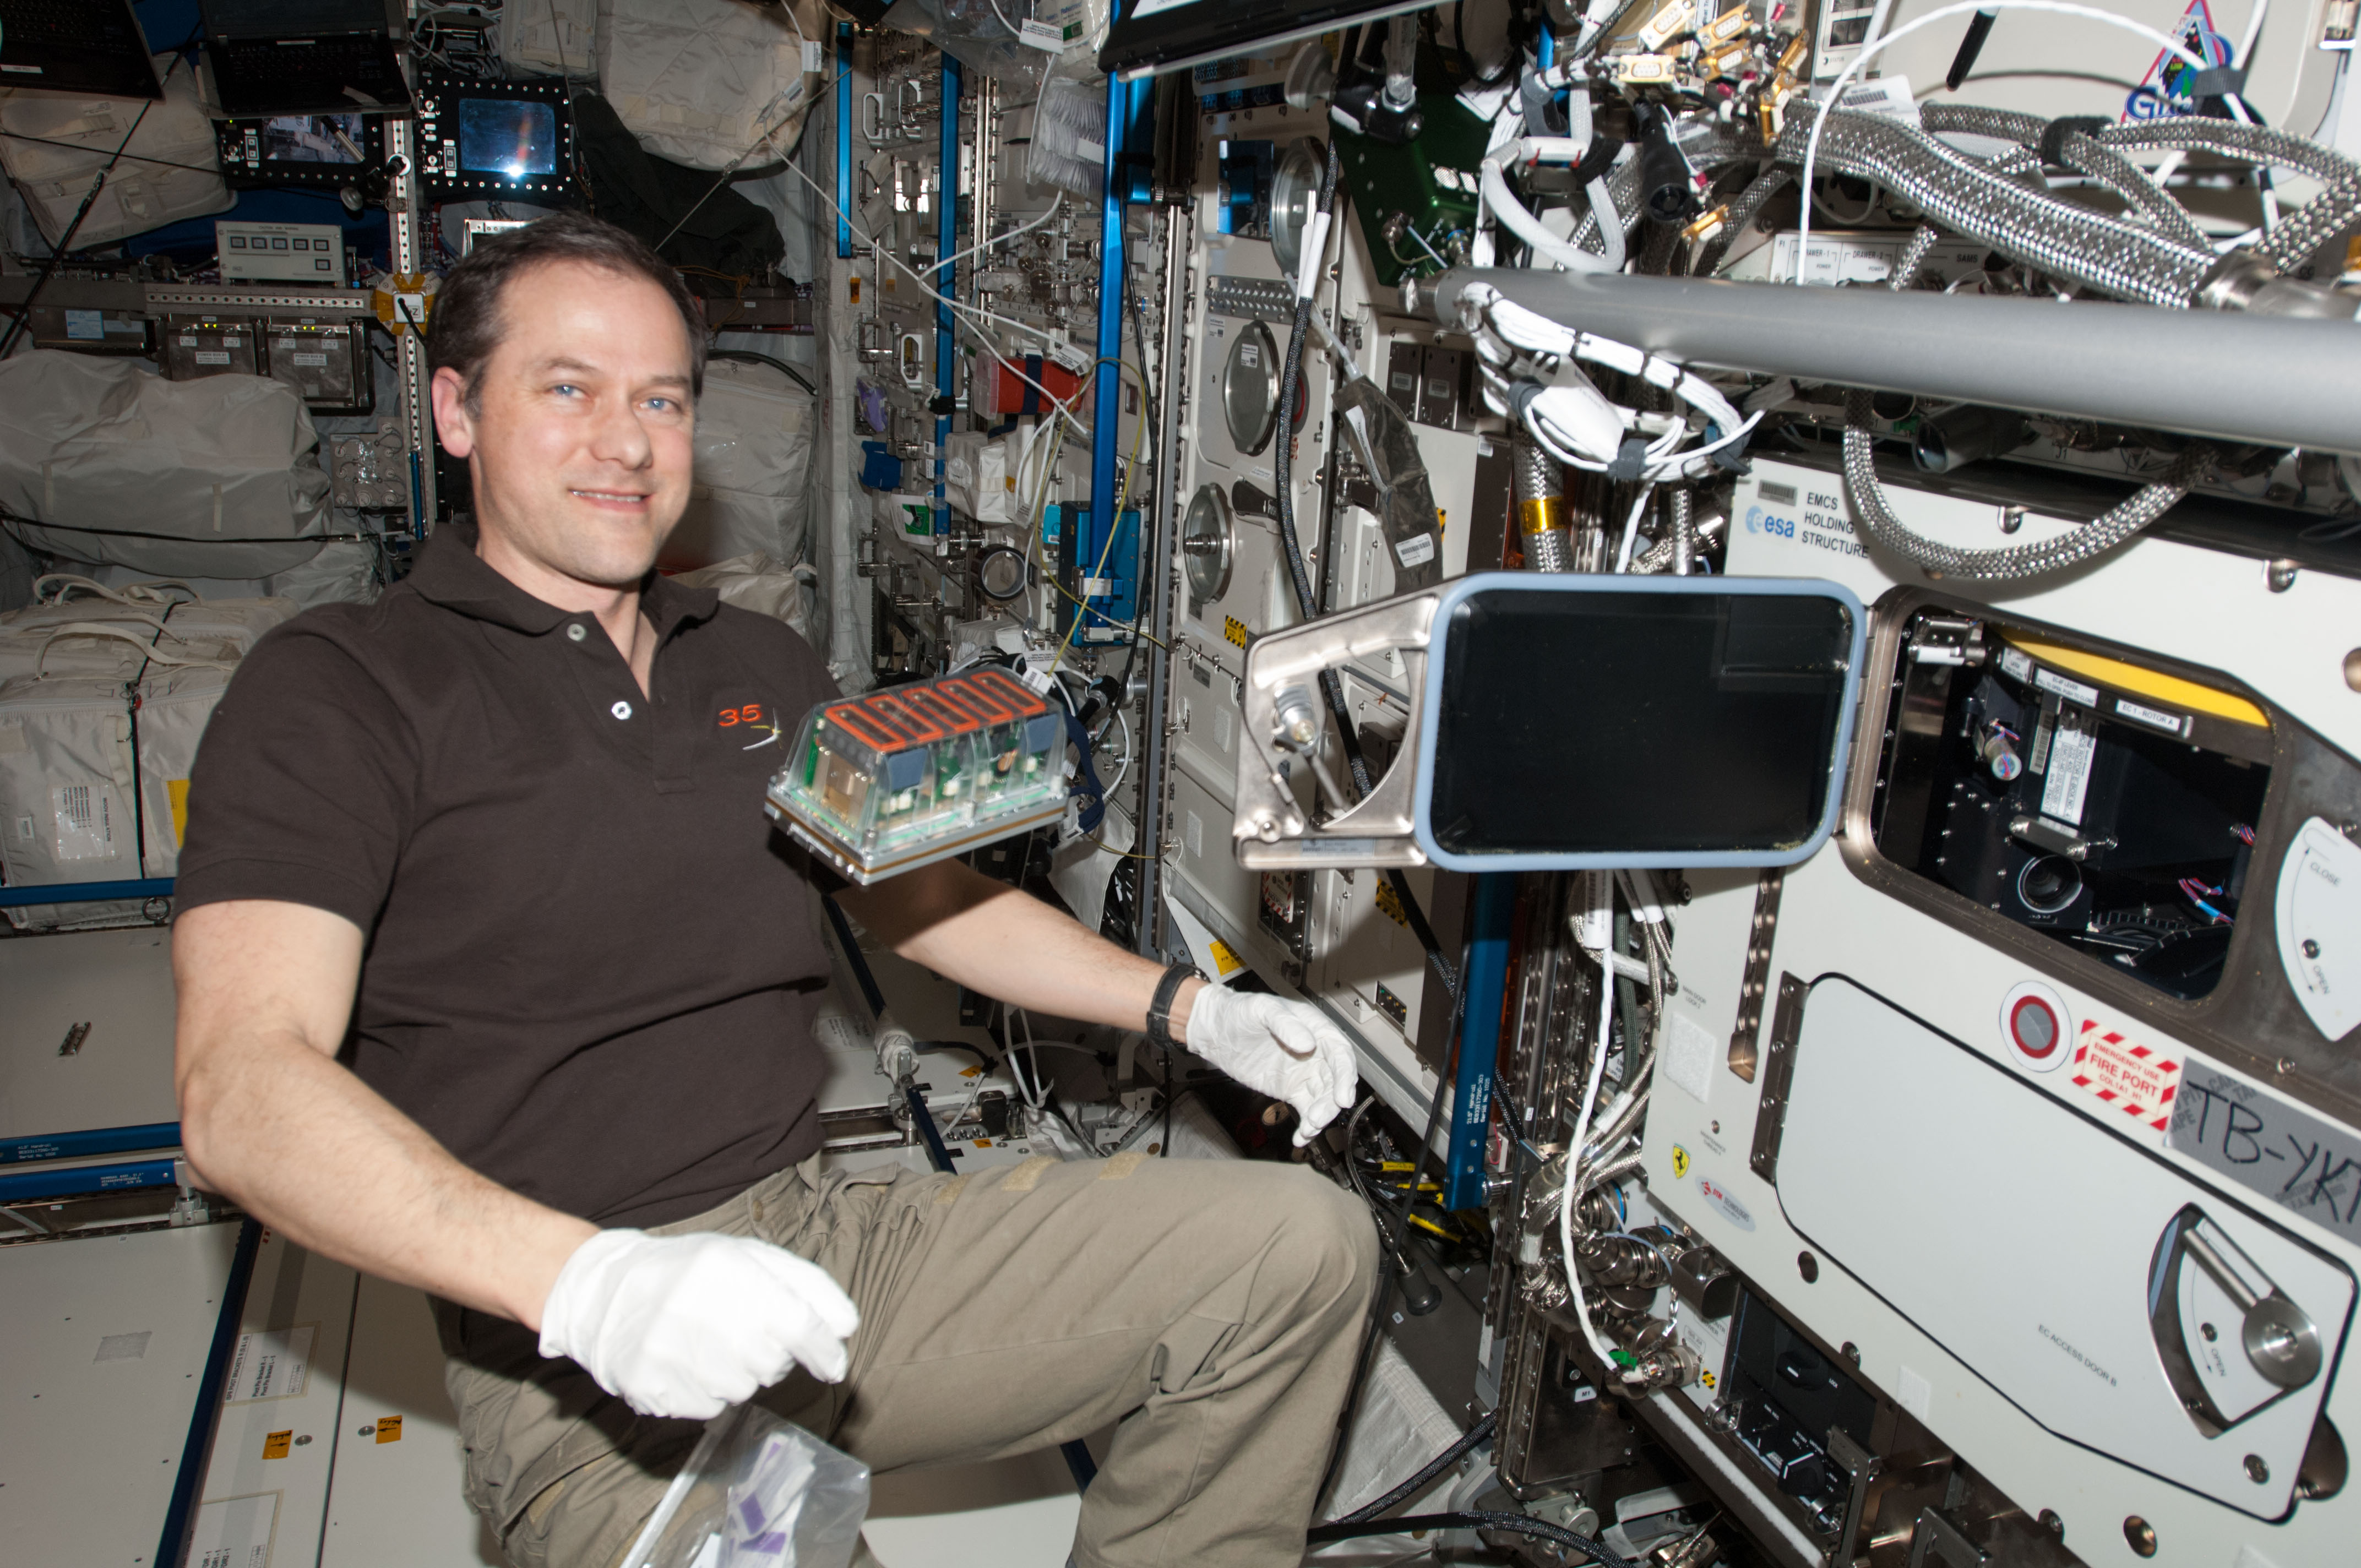 Tom Mashburn at ISS with Seedling Growth (credit: NASA)